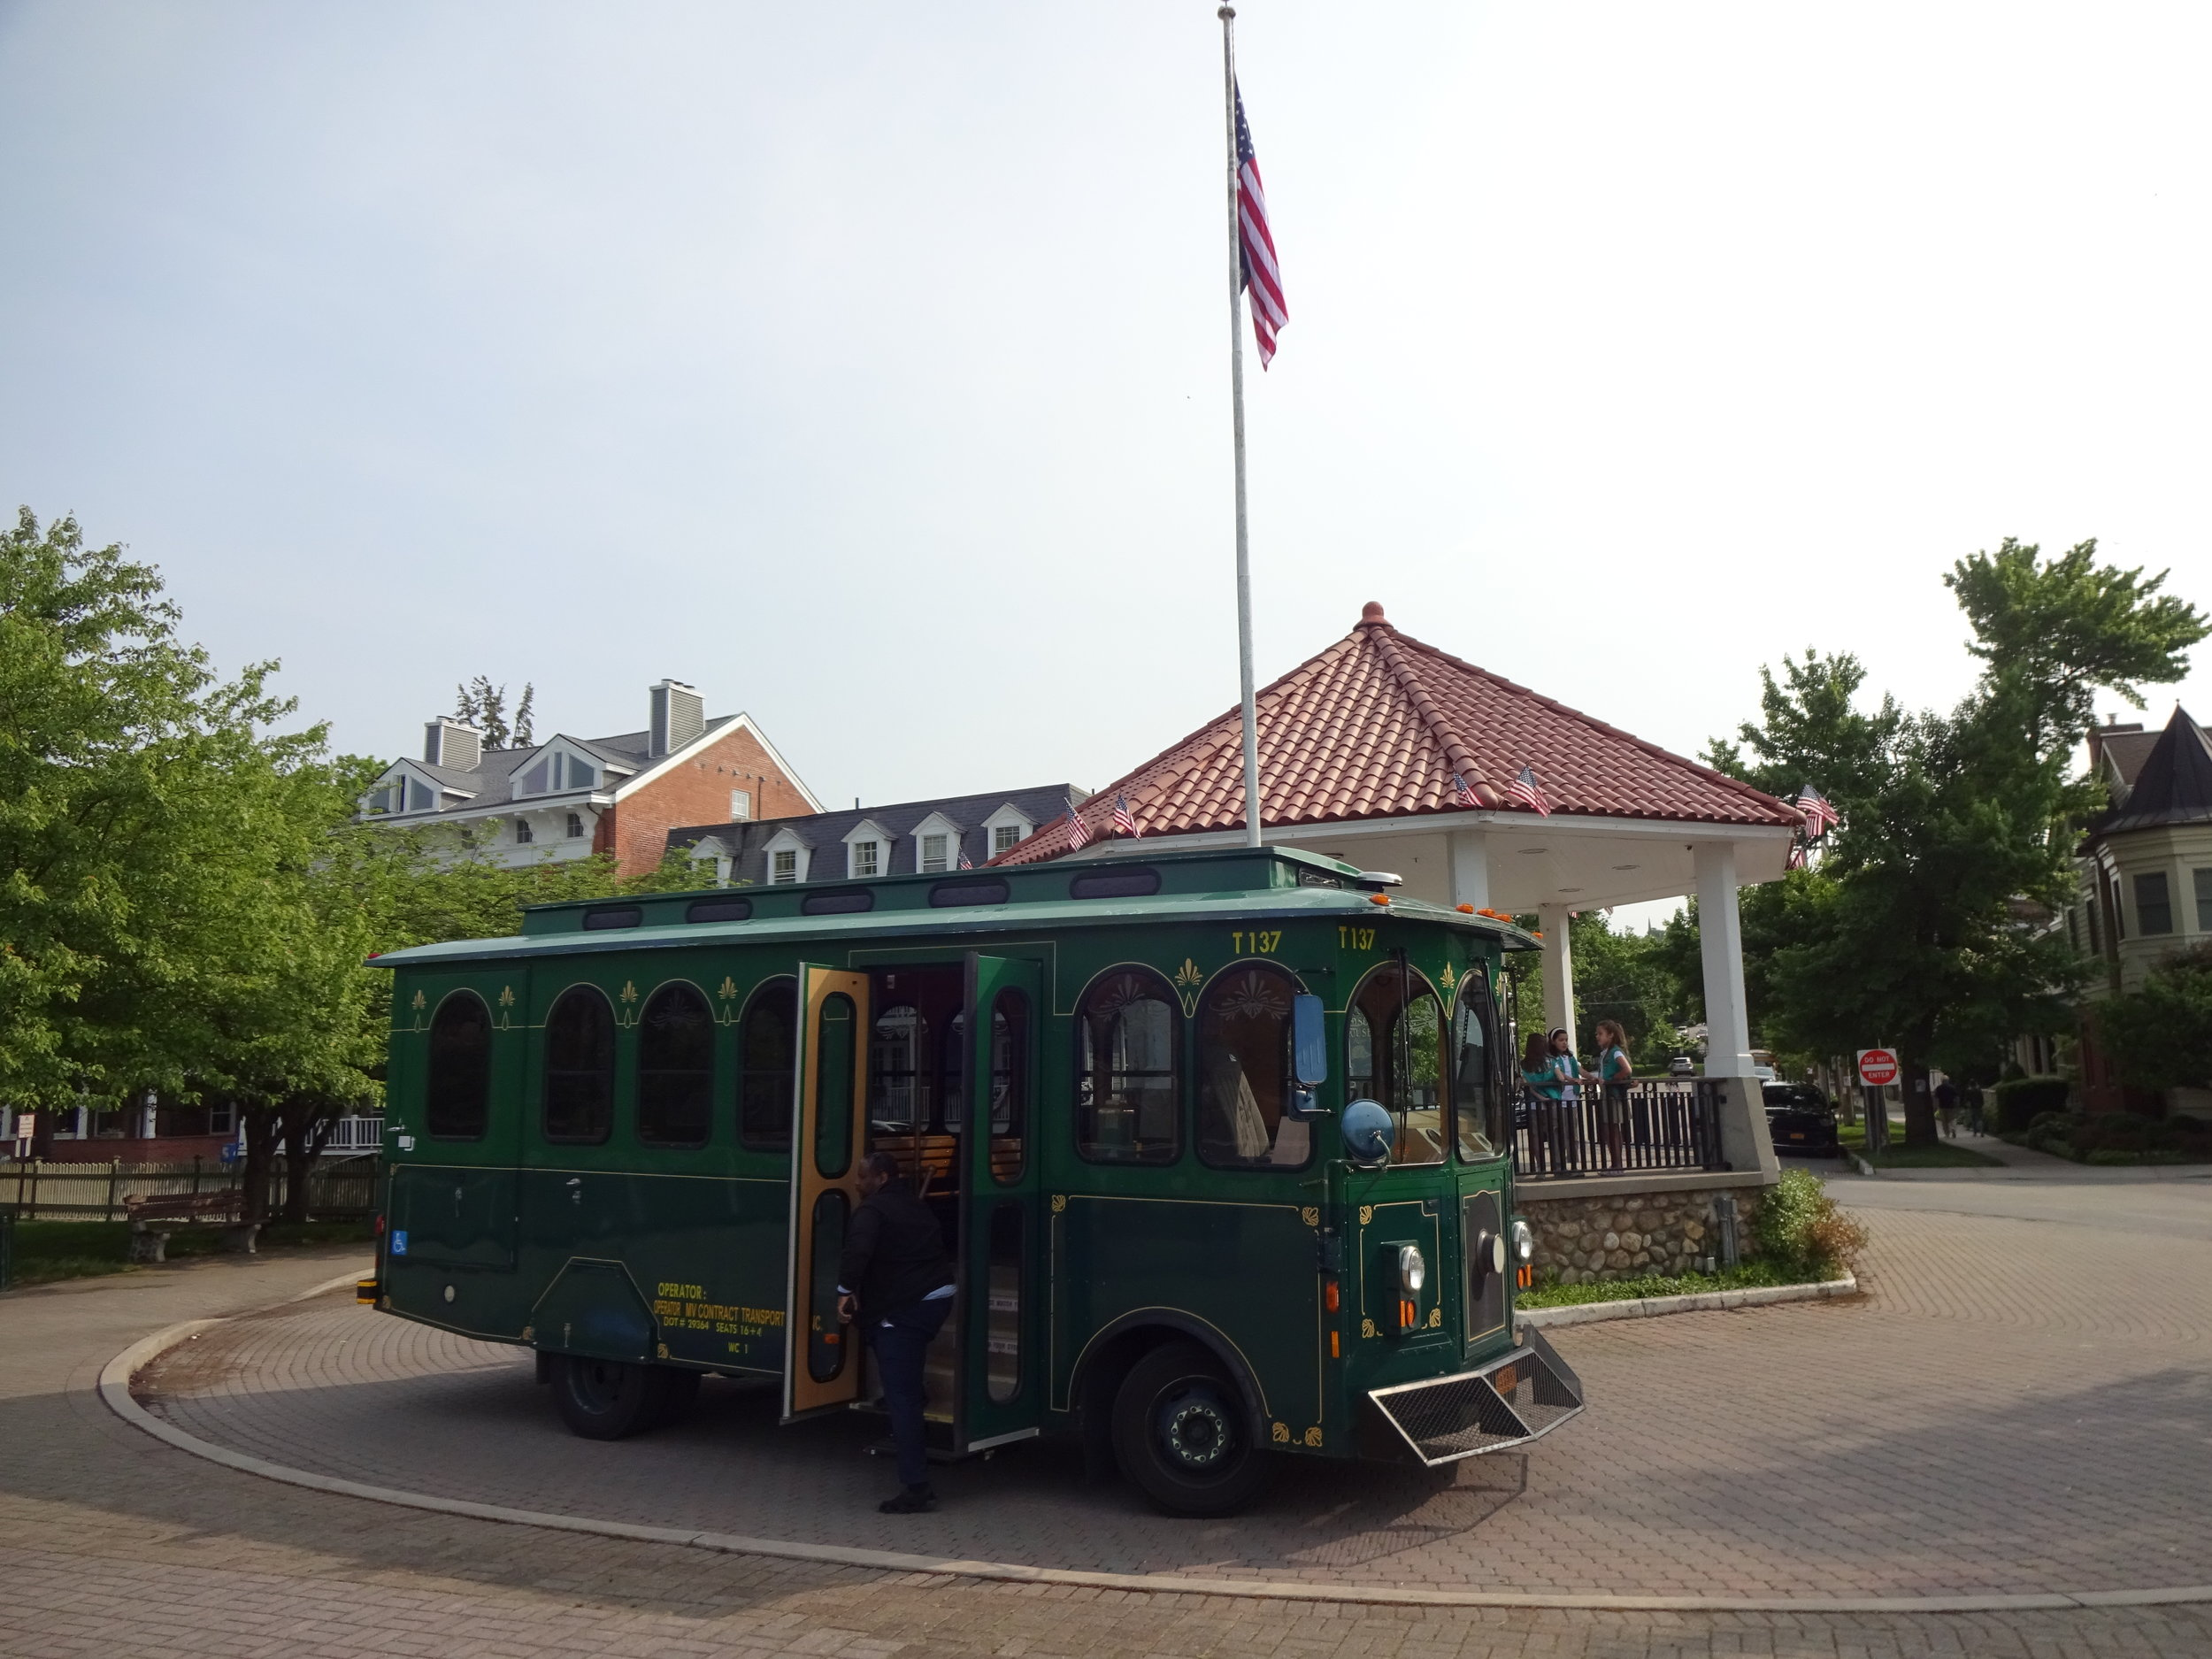 All Aboard! - The Cold Spring Trolley stops and opens it's doors at each stop on the schedule. Anyone with can take a ride for $2.